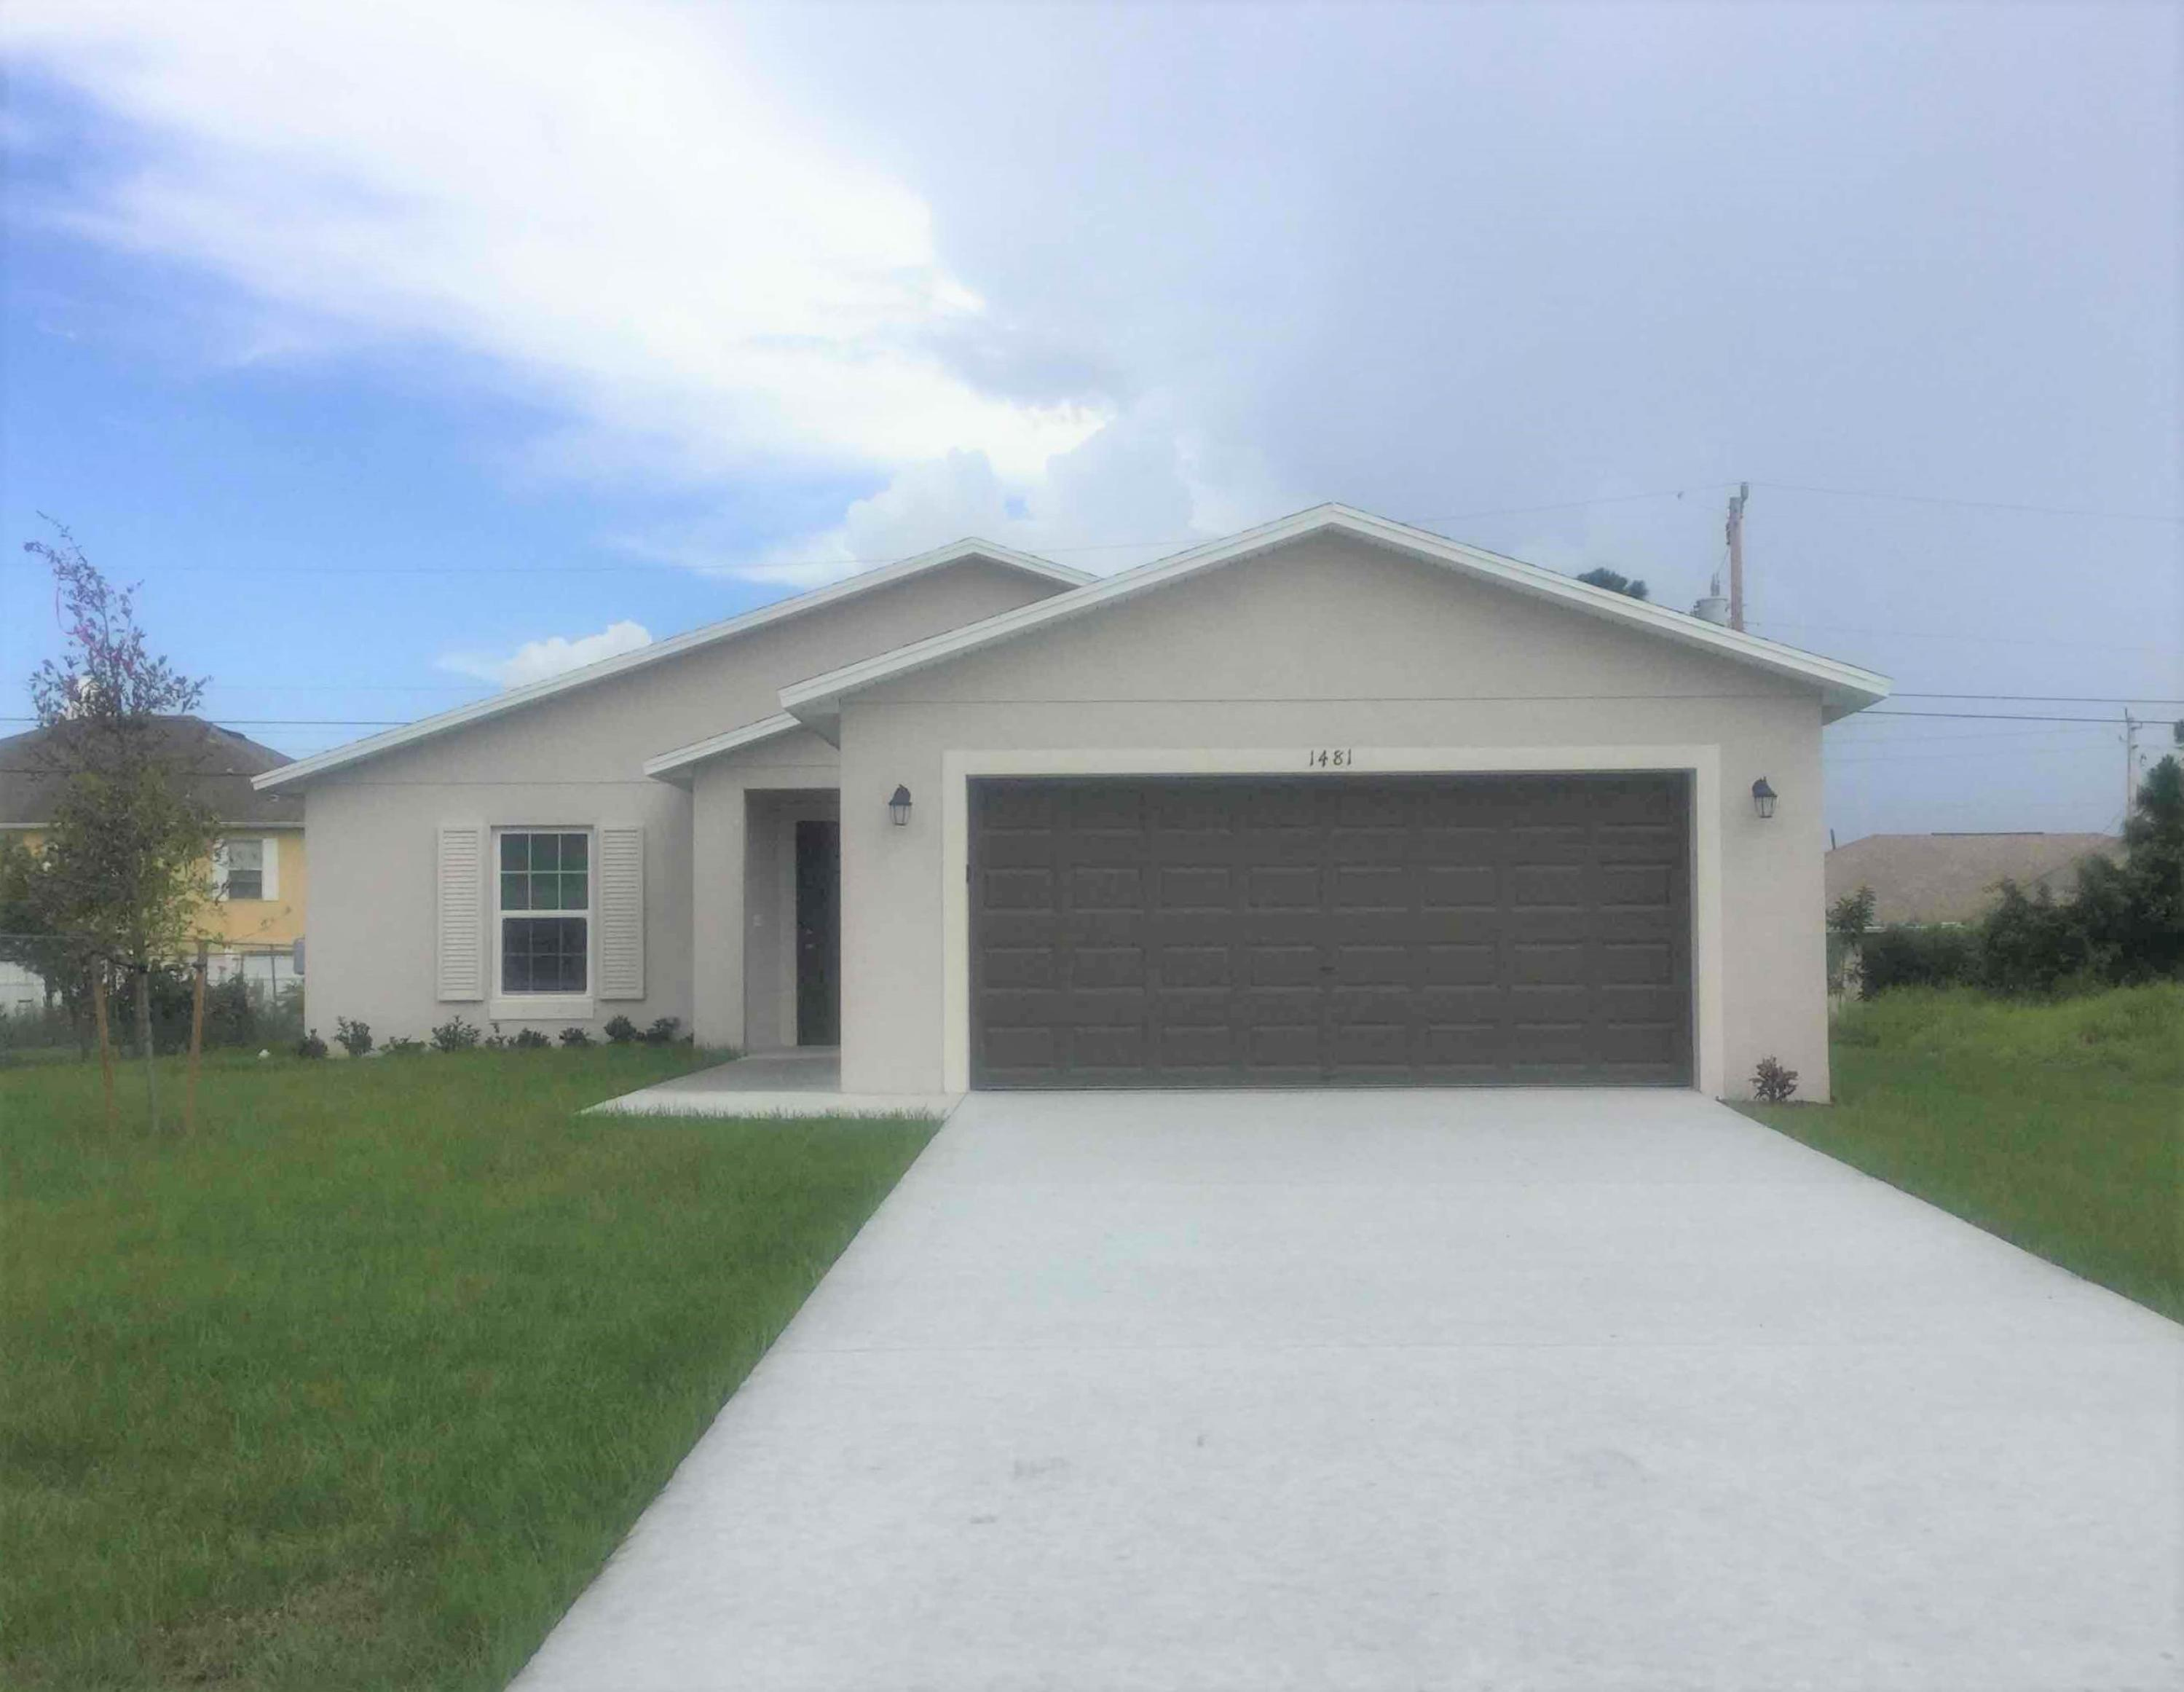 1481 Sw Kamchatka Avenue, Port Saint Lucie, FL 34953